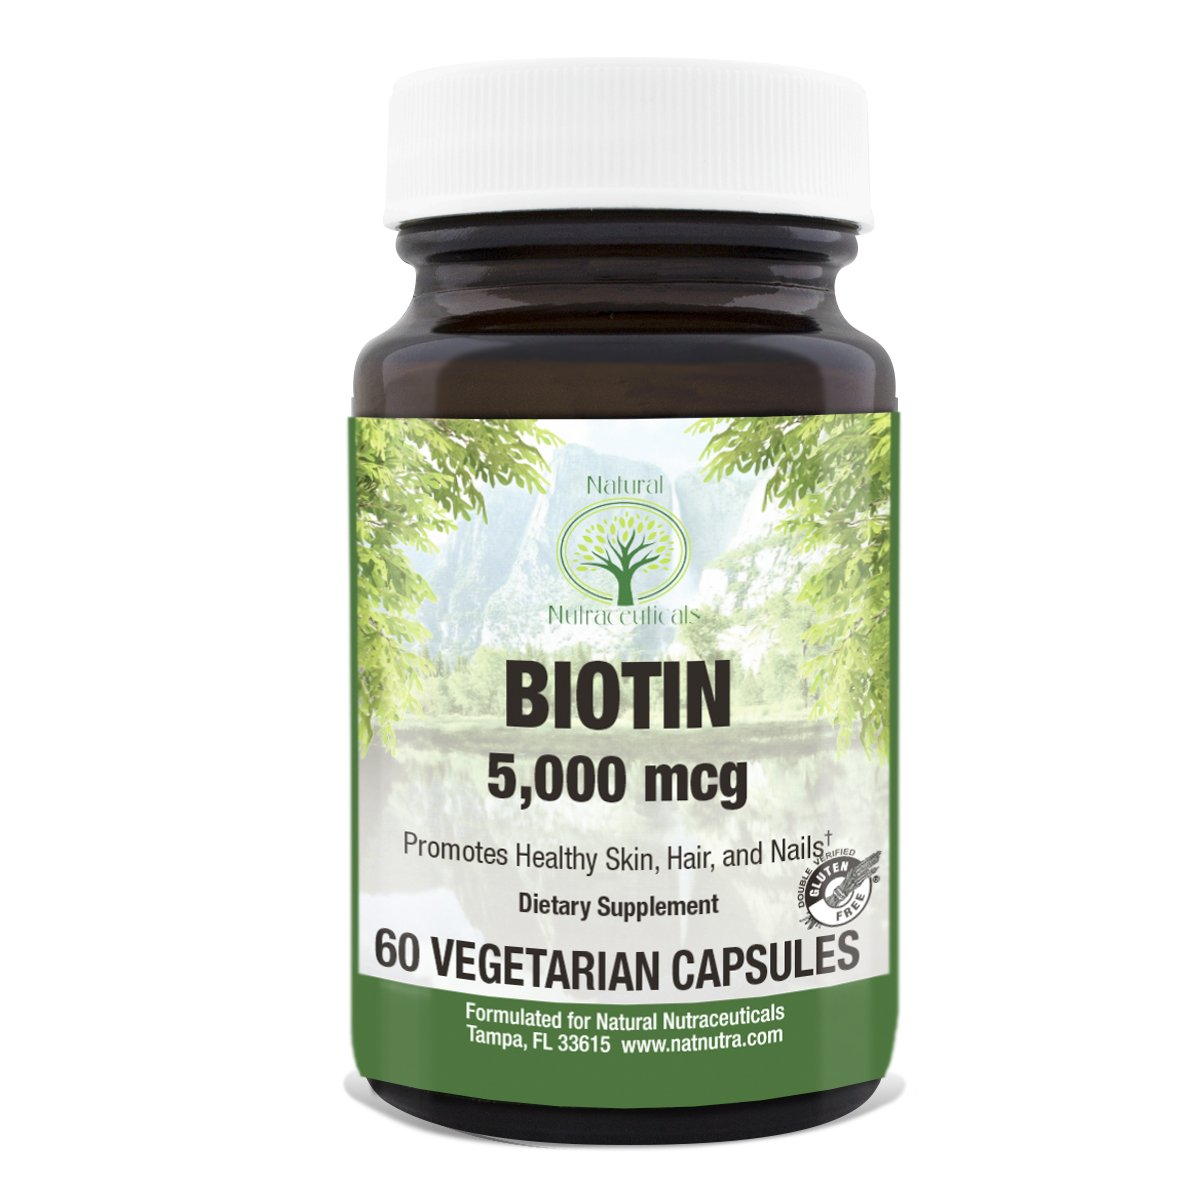 Biotin for Hair Growth by Natural Nutra – Gluten Free, Vegetarian, 5000 mcg, 60 Capsules